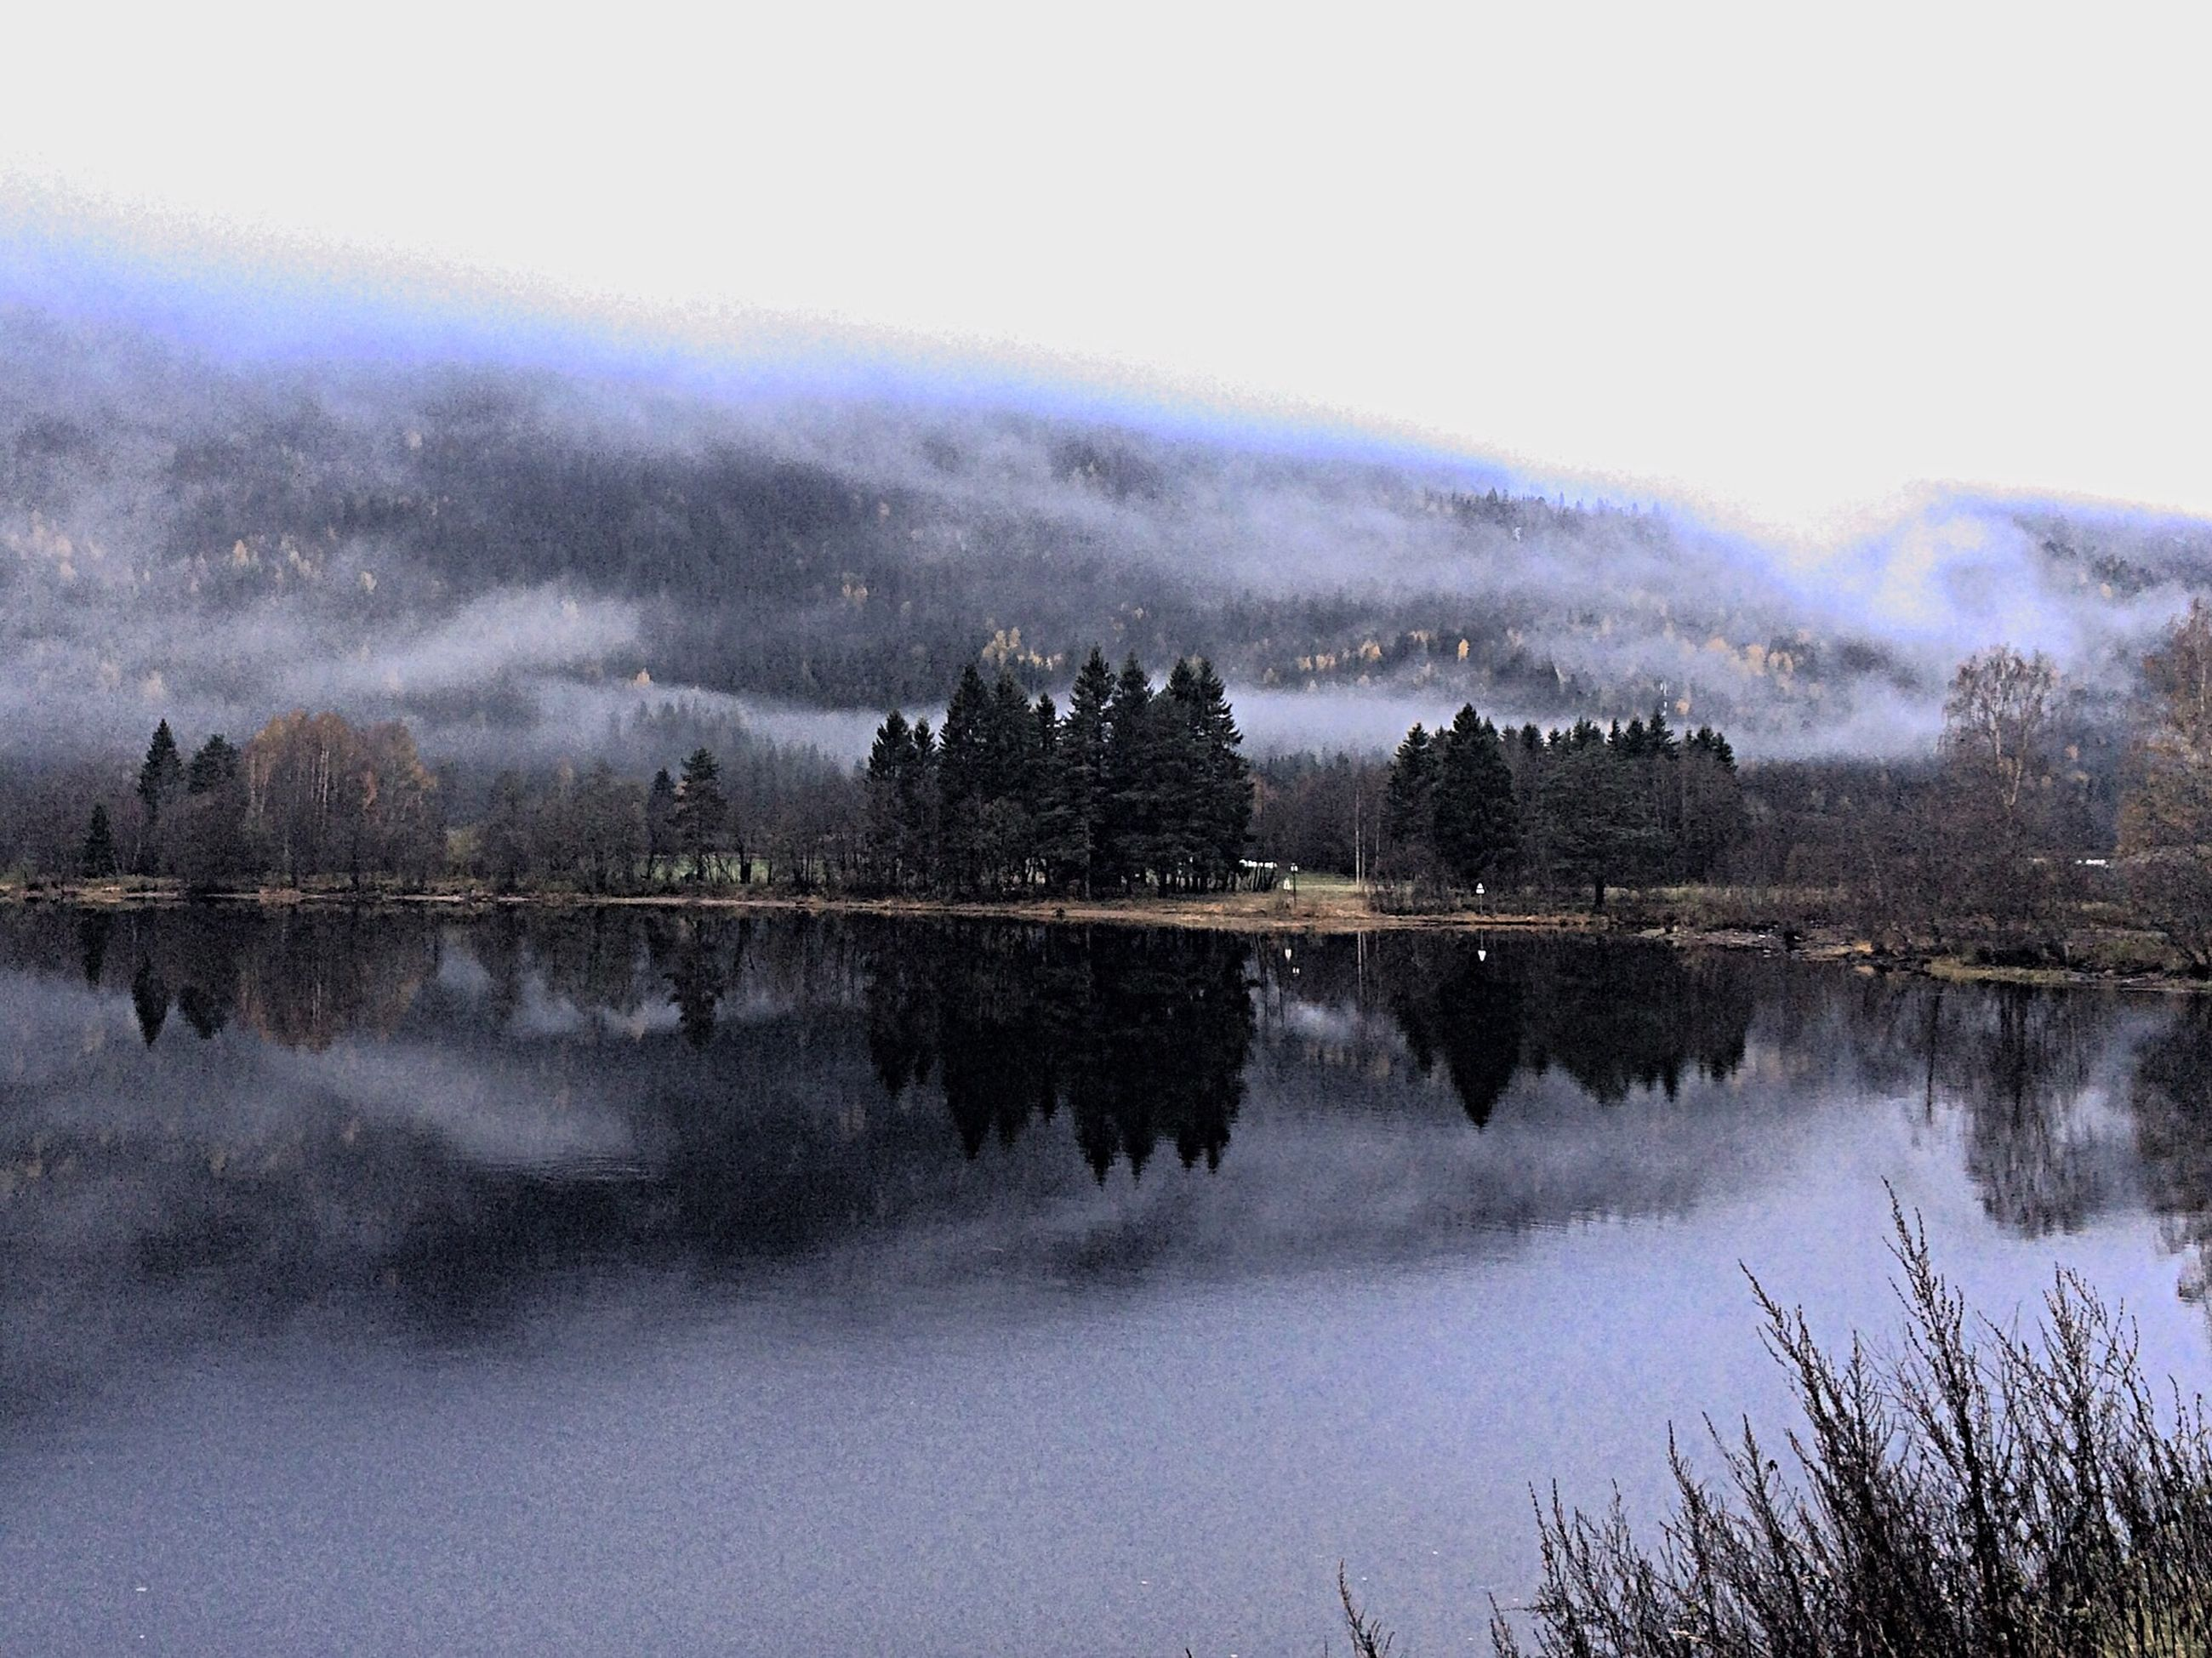 reflection, water, lake, tranquil scene, tranquility, scenics, beauty in nature, tree, standing water, fog, sky, waterfront, nature, weather, symmetry, calm, idyllic, river, foggy, outdoors